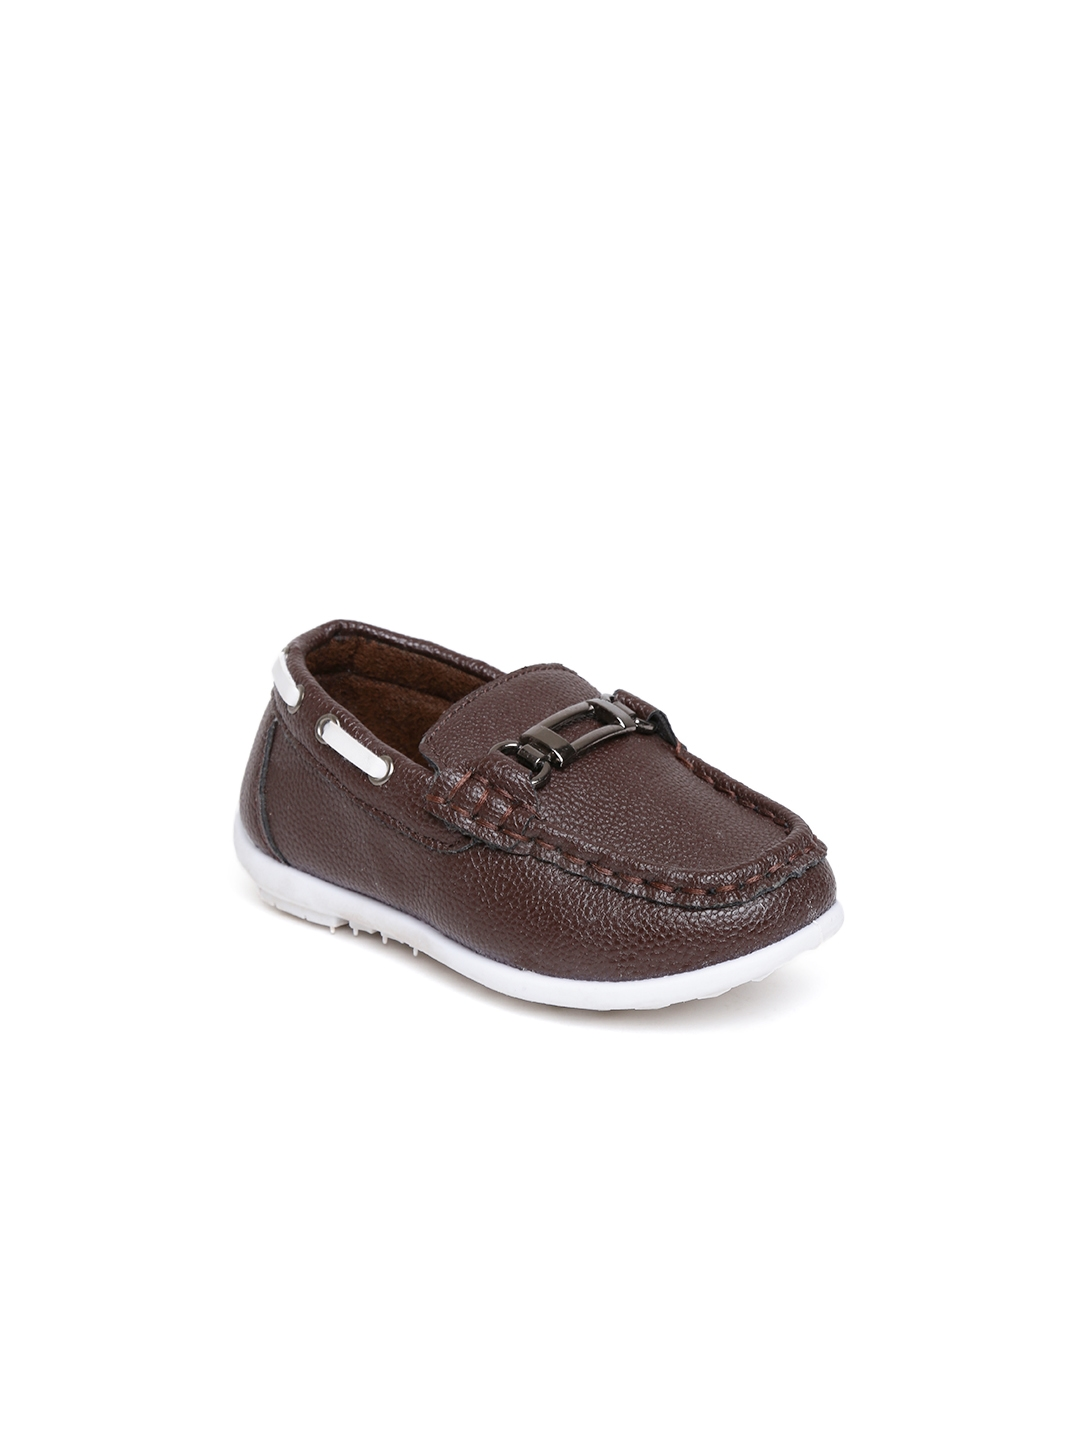 3a3006a90f2 Buy Kittens Boys Coffee Brown Solid Loafers - Casual Shoes for Boys ...